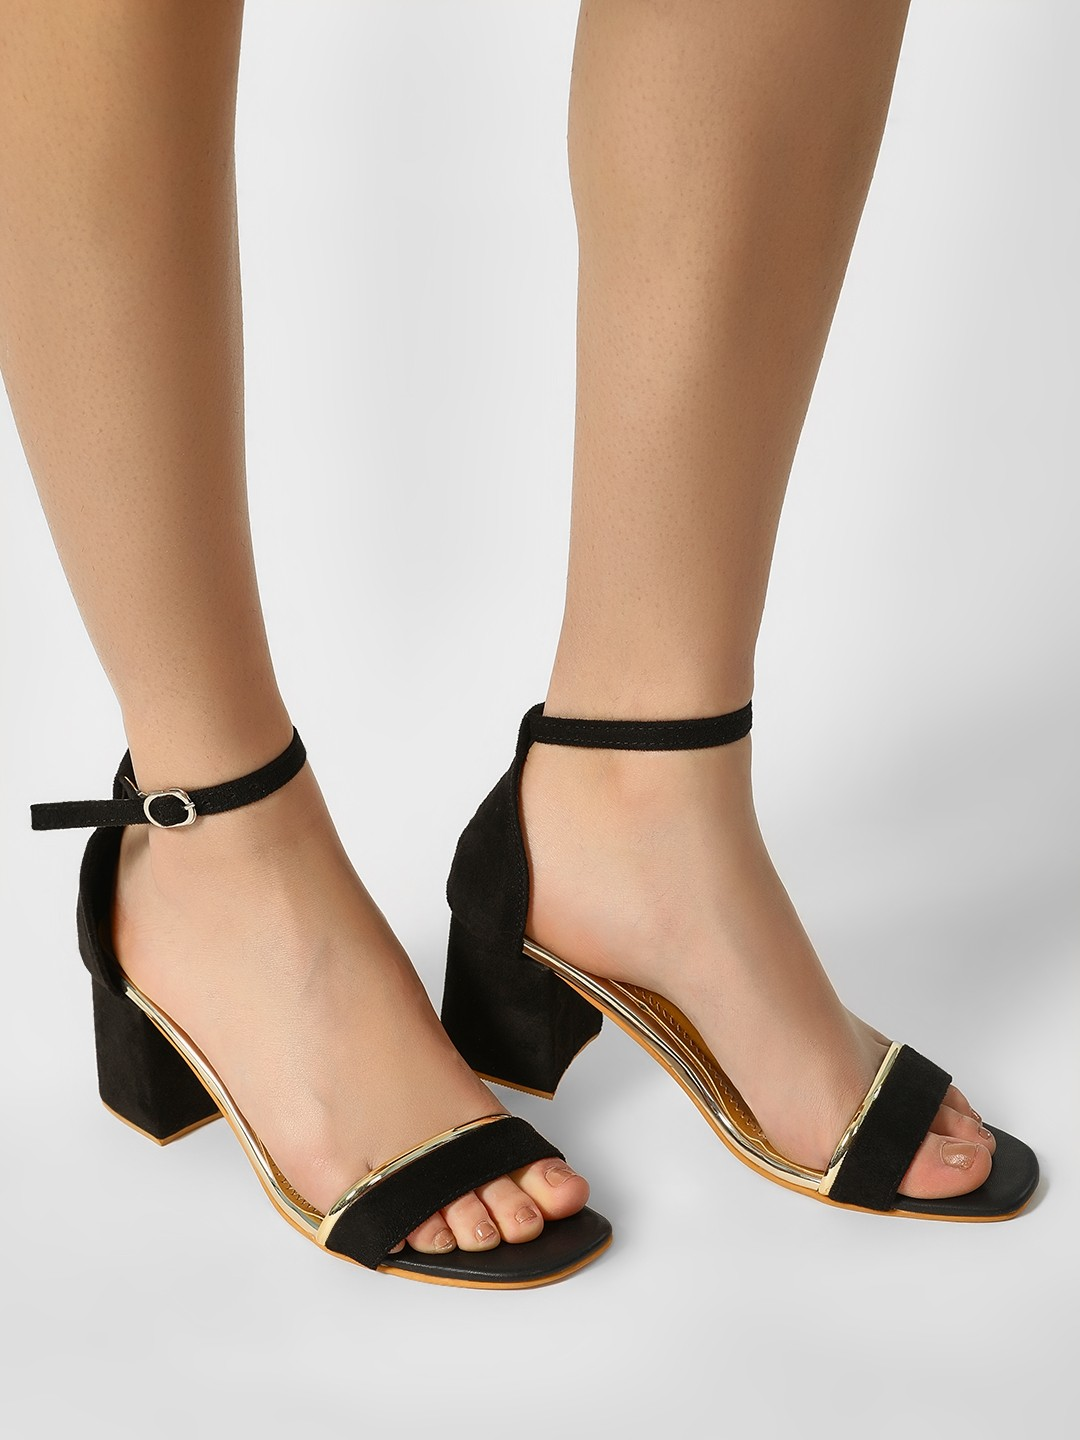 My Foot Couture Black Ankle Strap Block Heeled Sandals 1